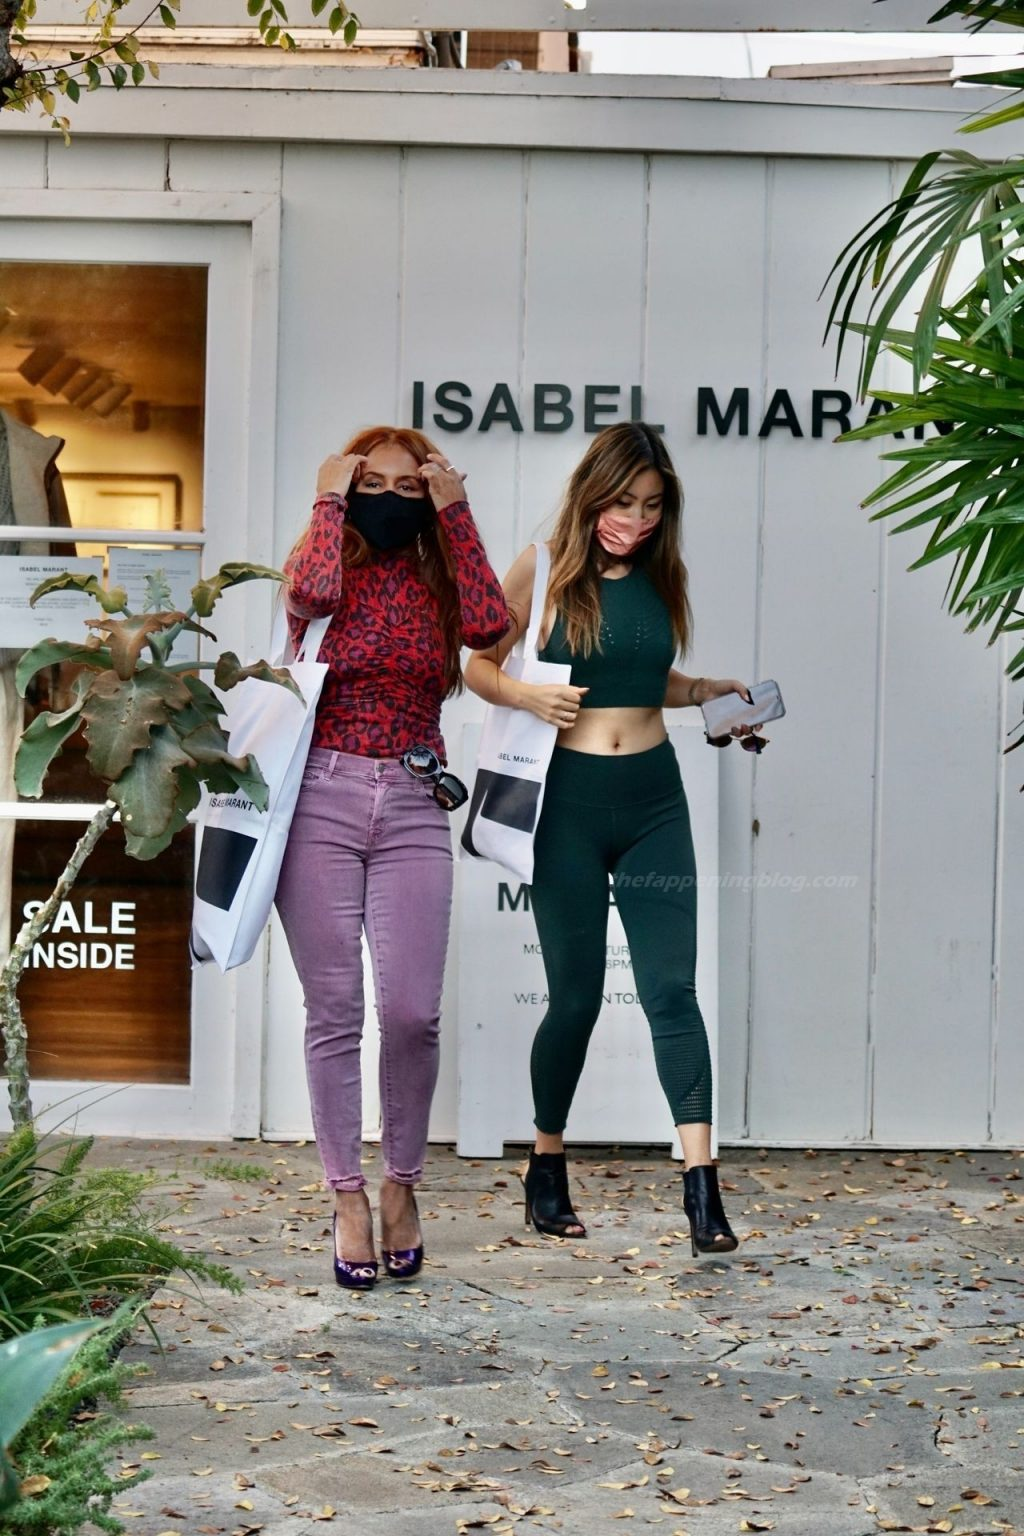 Kai Morris Goes Shopping at Isabel Marant with a Friend (123 Photos)